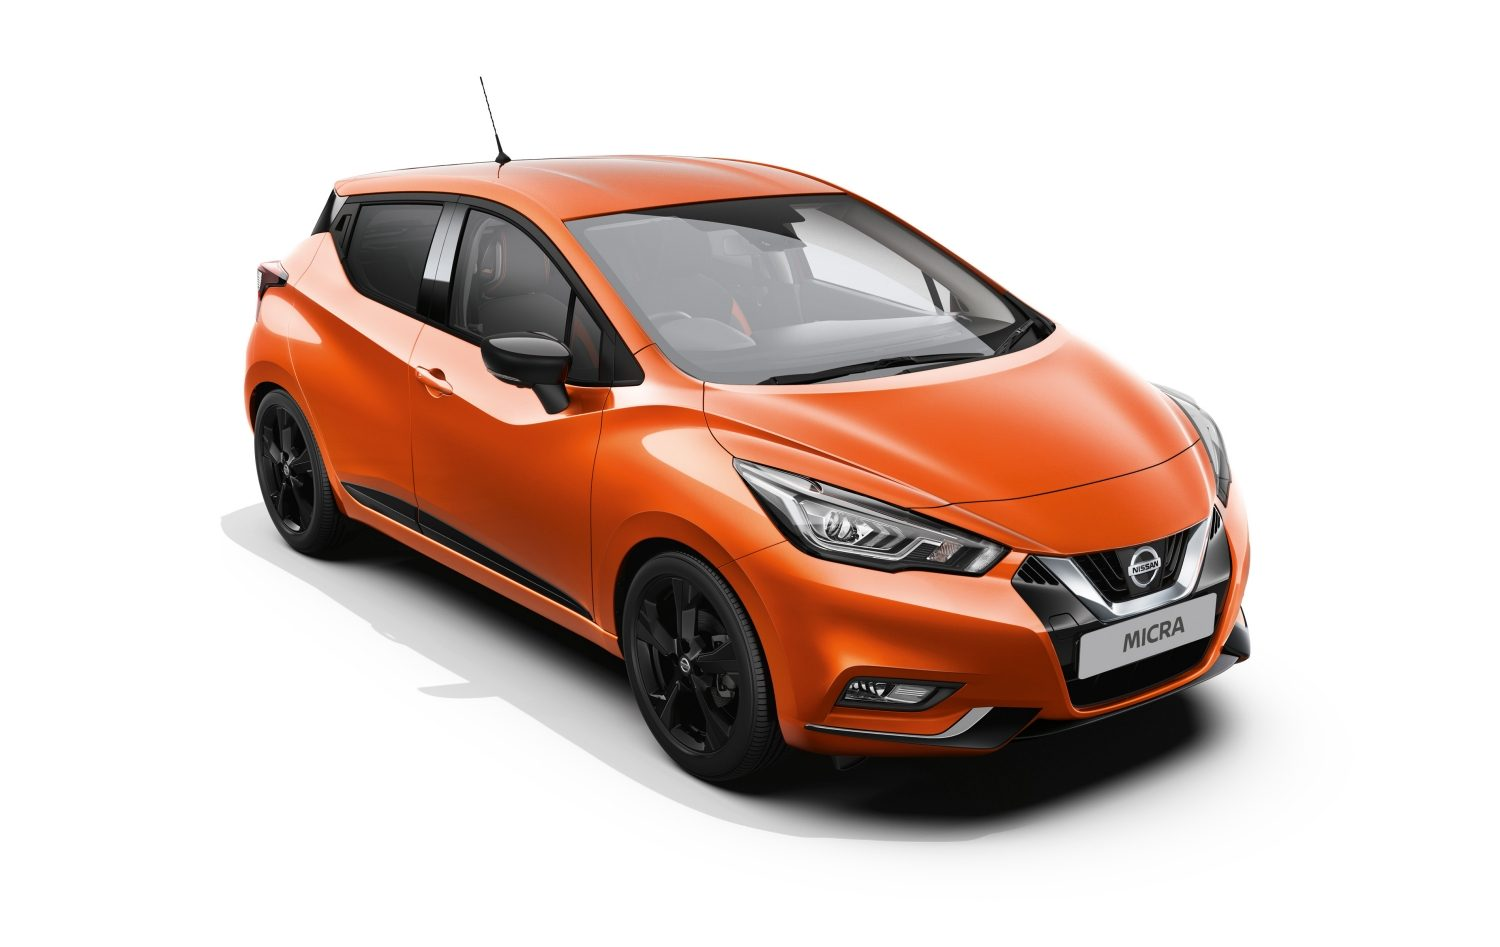 Nissan Micra 1.0L Petrol exterior in Orange